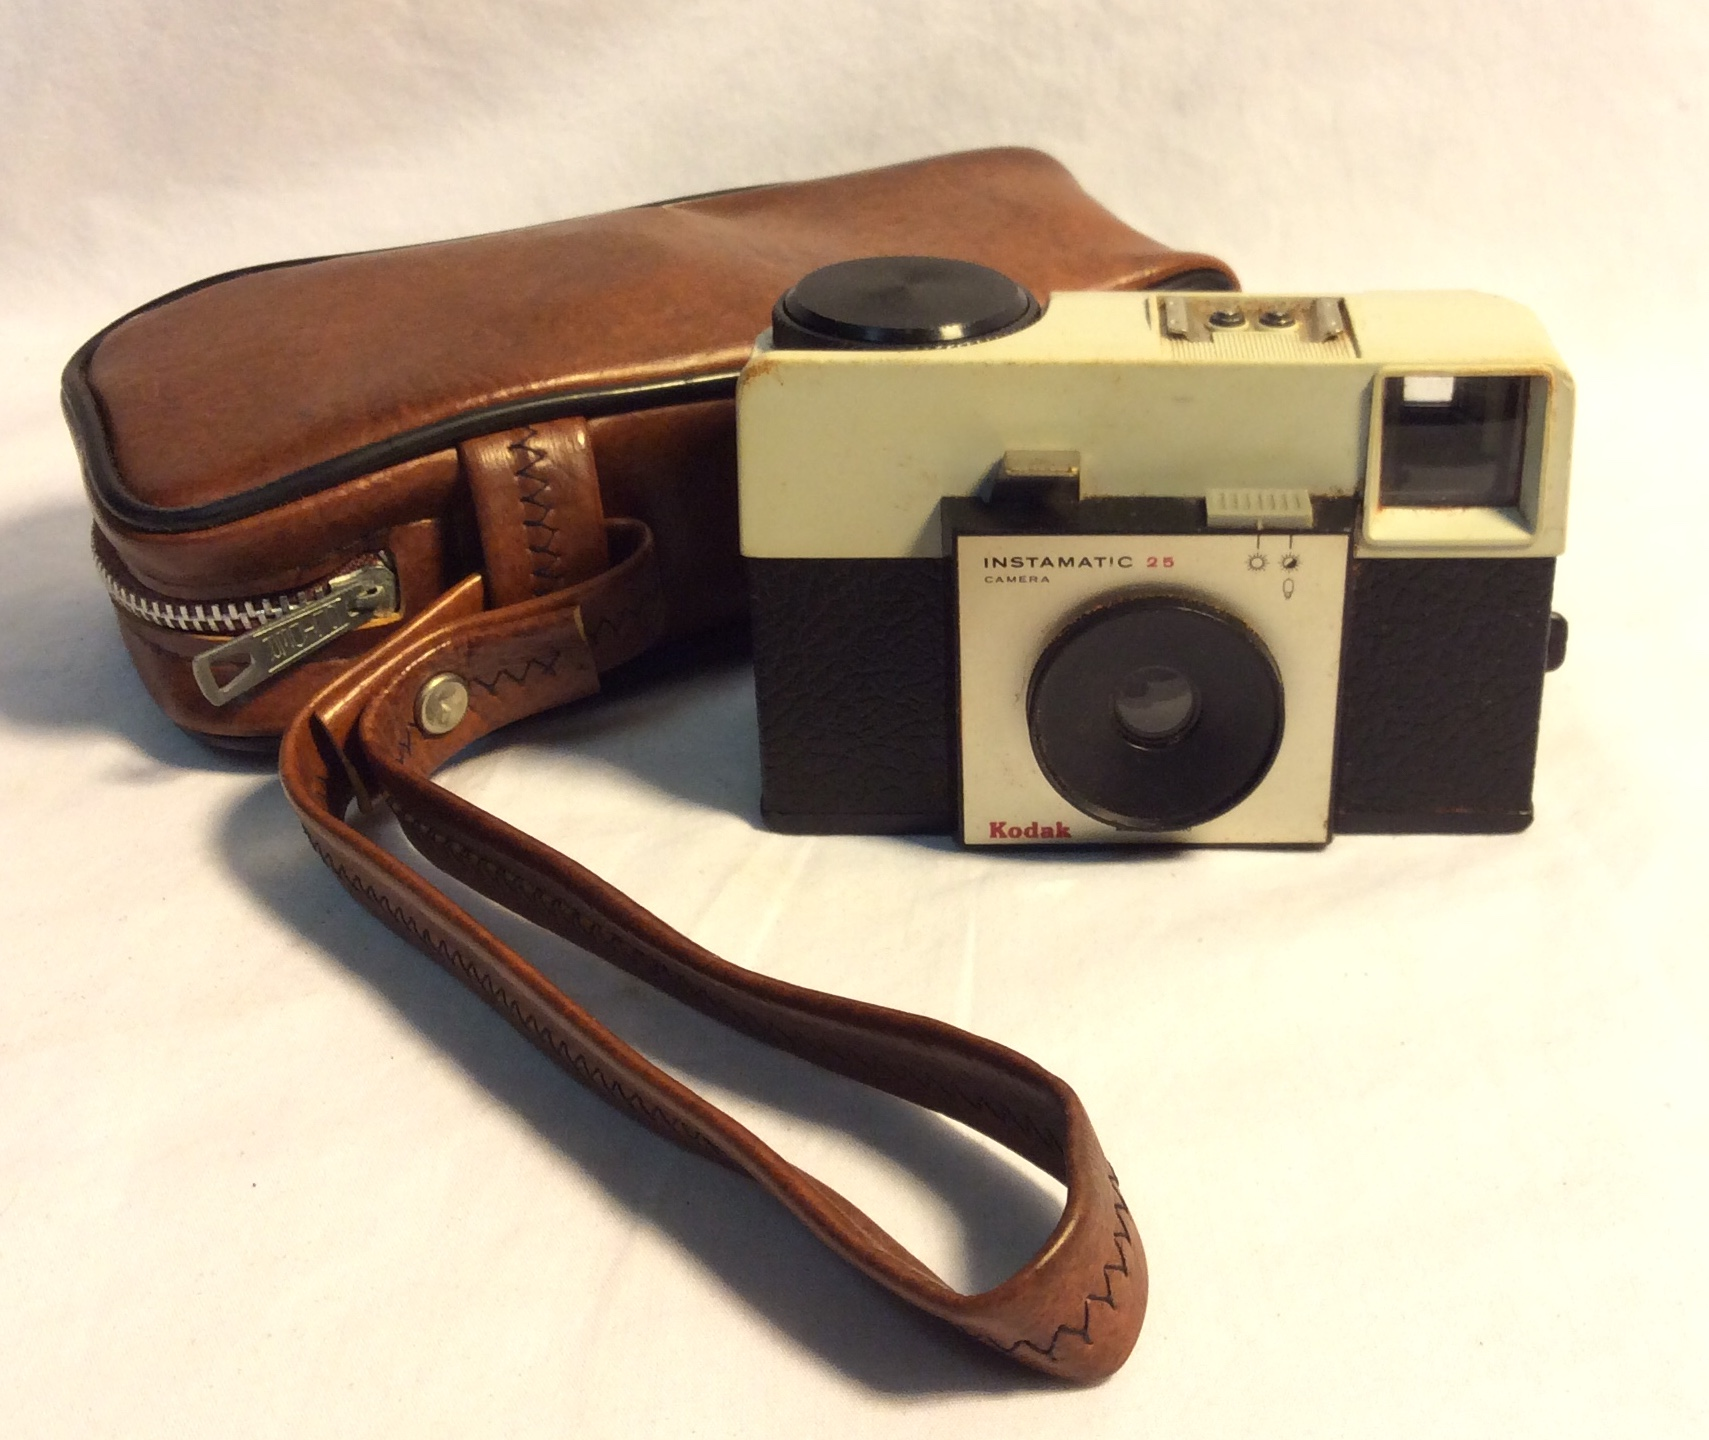 Vintage 1960's Kodak Instamatic Camera with brown leather case